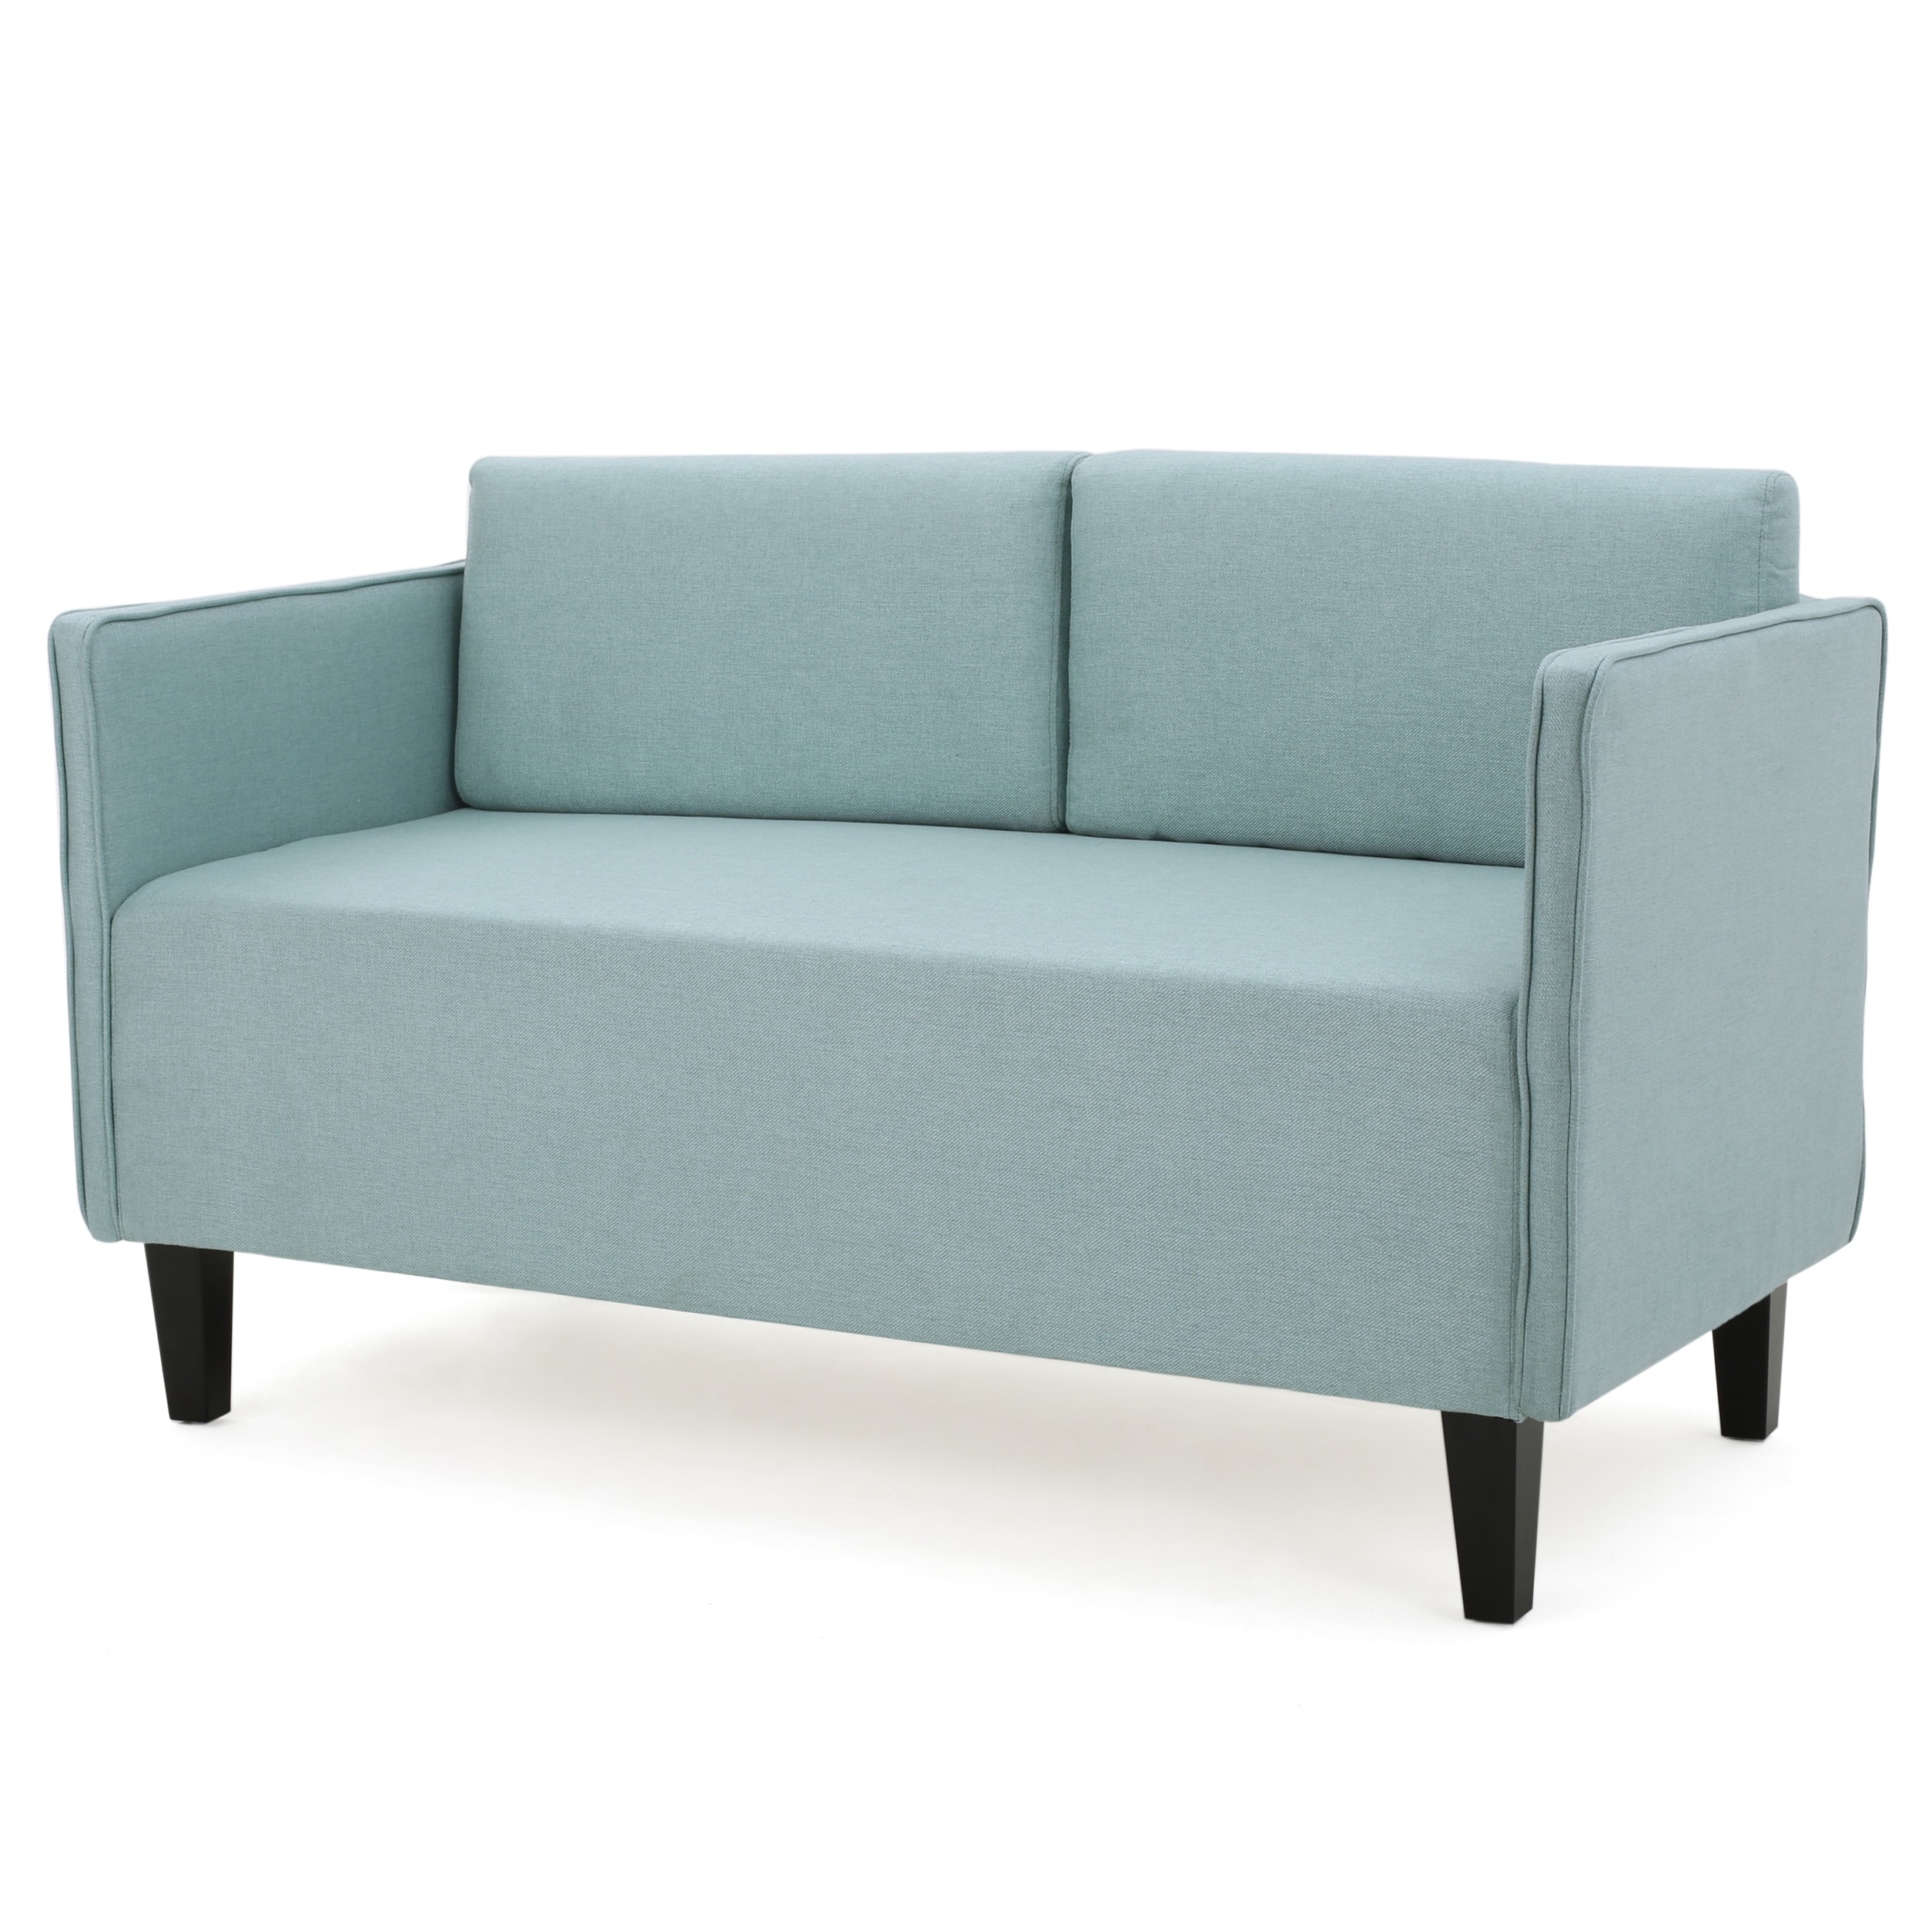 discount loveseat room large sets sofa s living gallery furniture bob p chair timeless